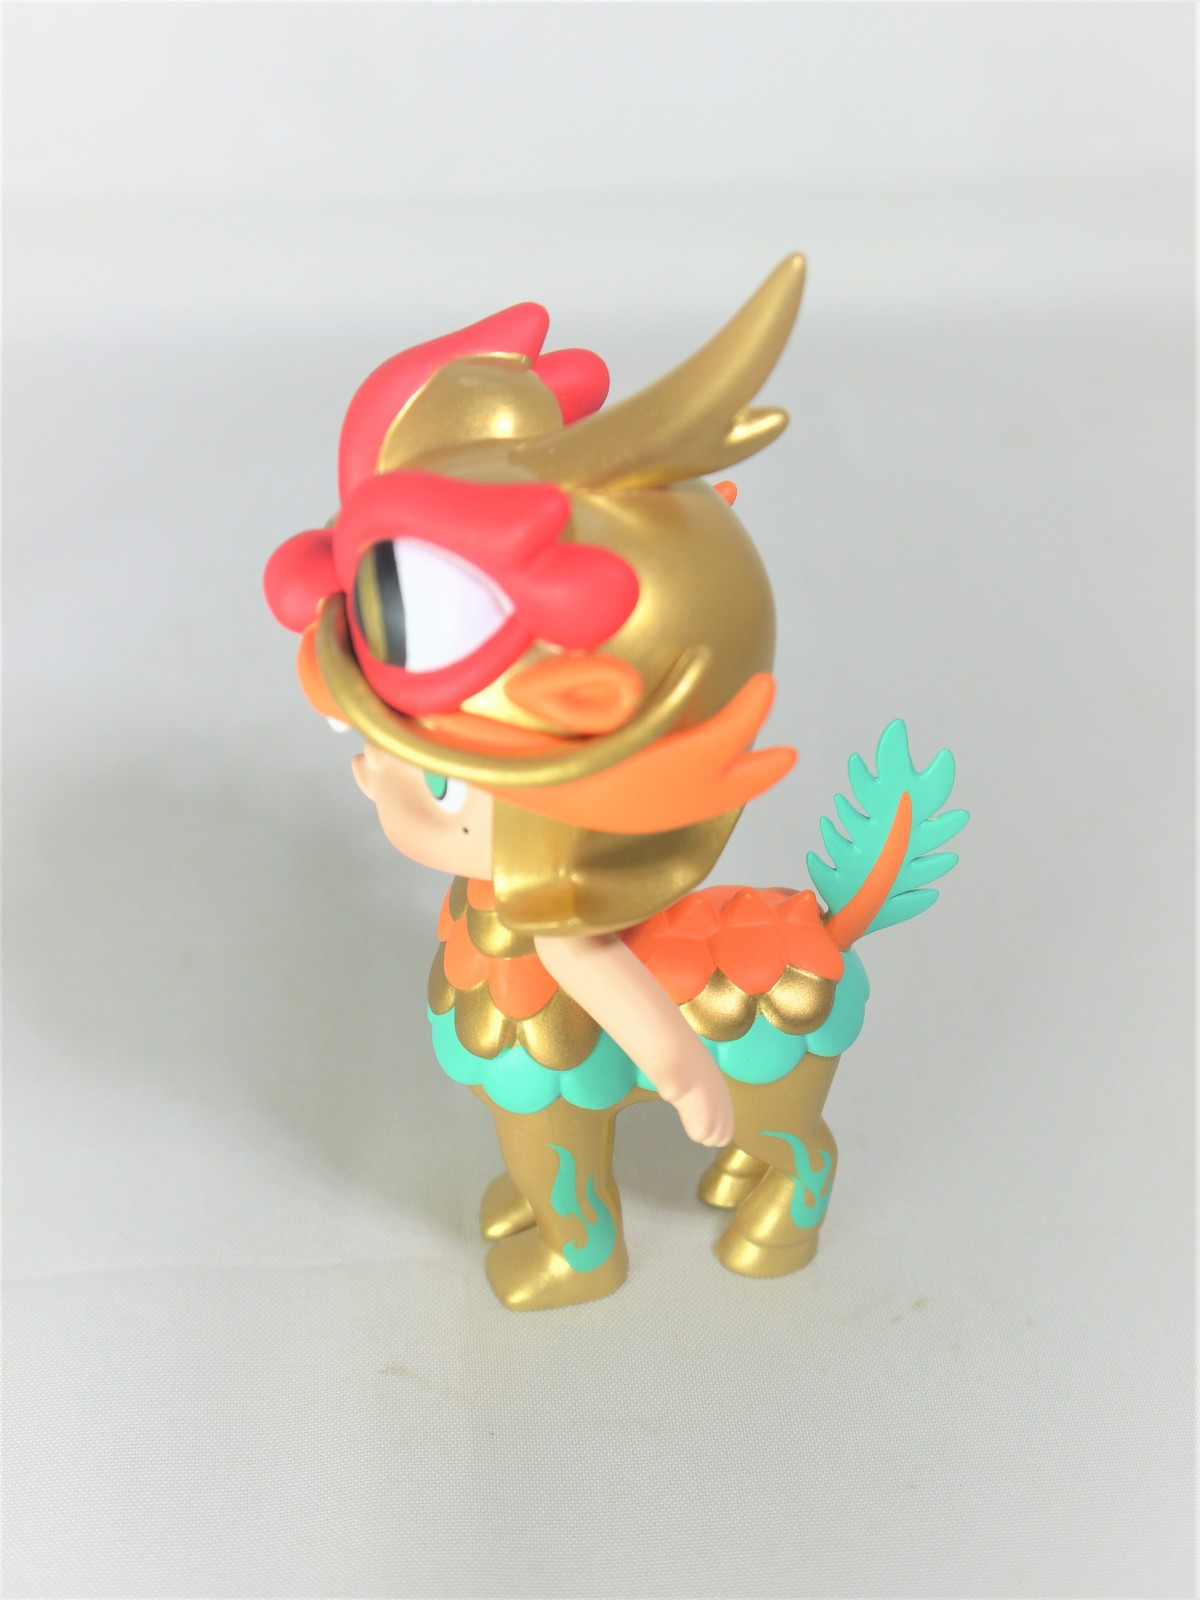 POP MART Kennyswork MOLLY CHINESE ANCIENT MYTHICAL CREATURES Golden Kylin